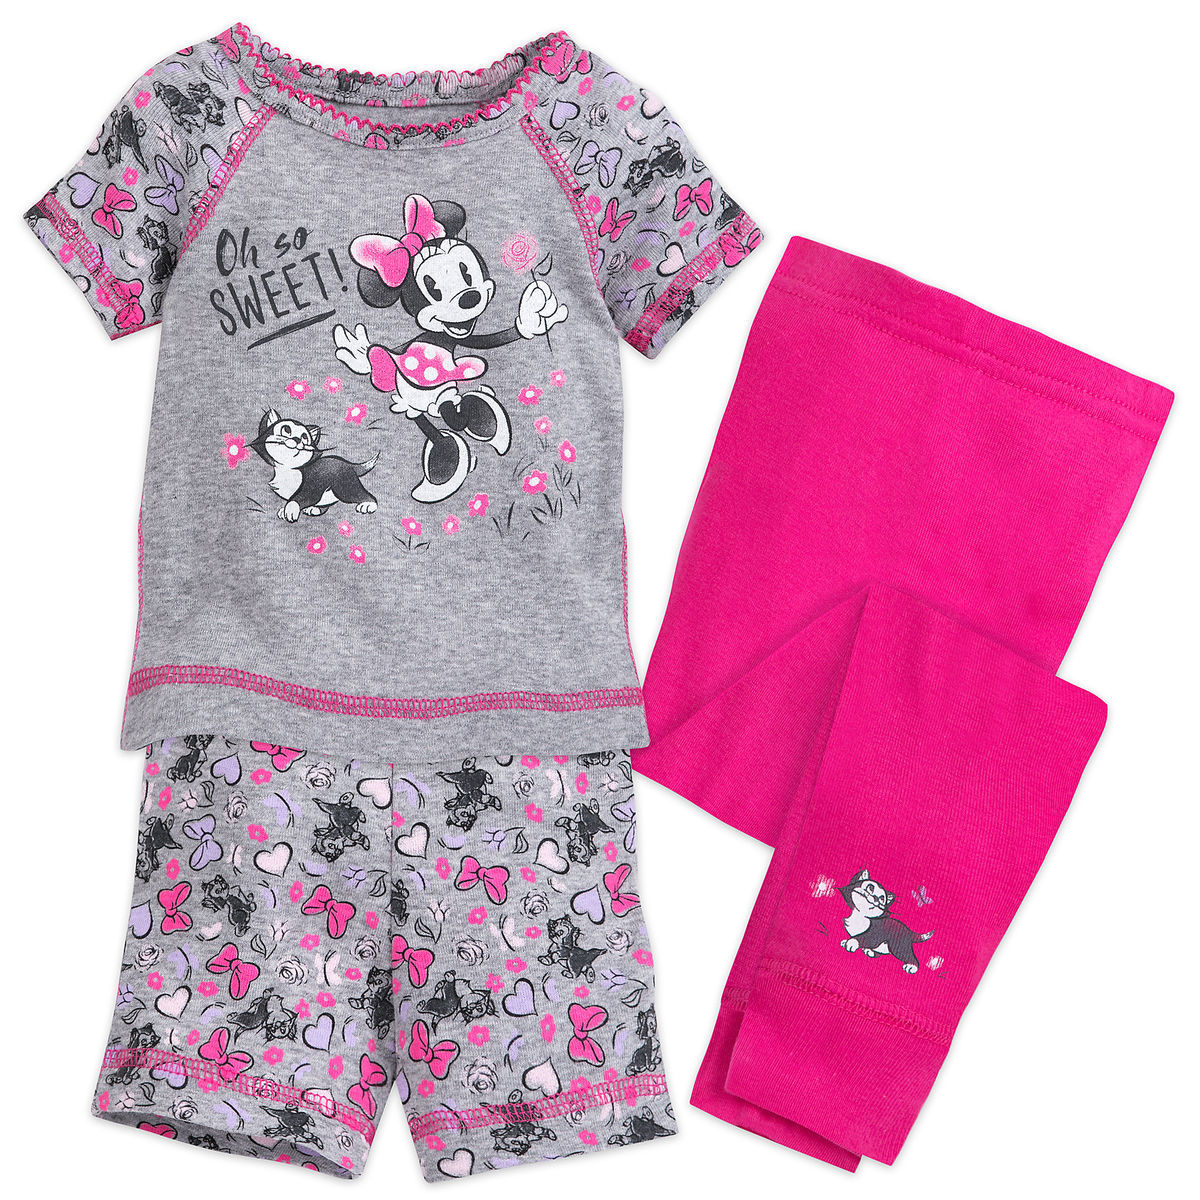 Product Image of Sweet Minnie Mouse Pajama Set for Baby   1 bfb69ac82